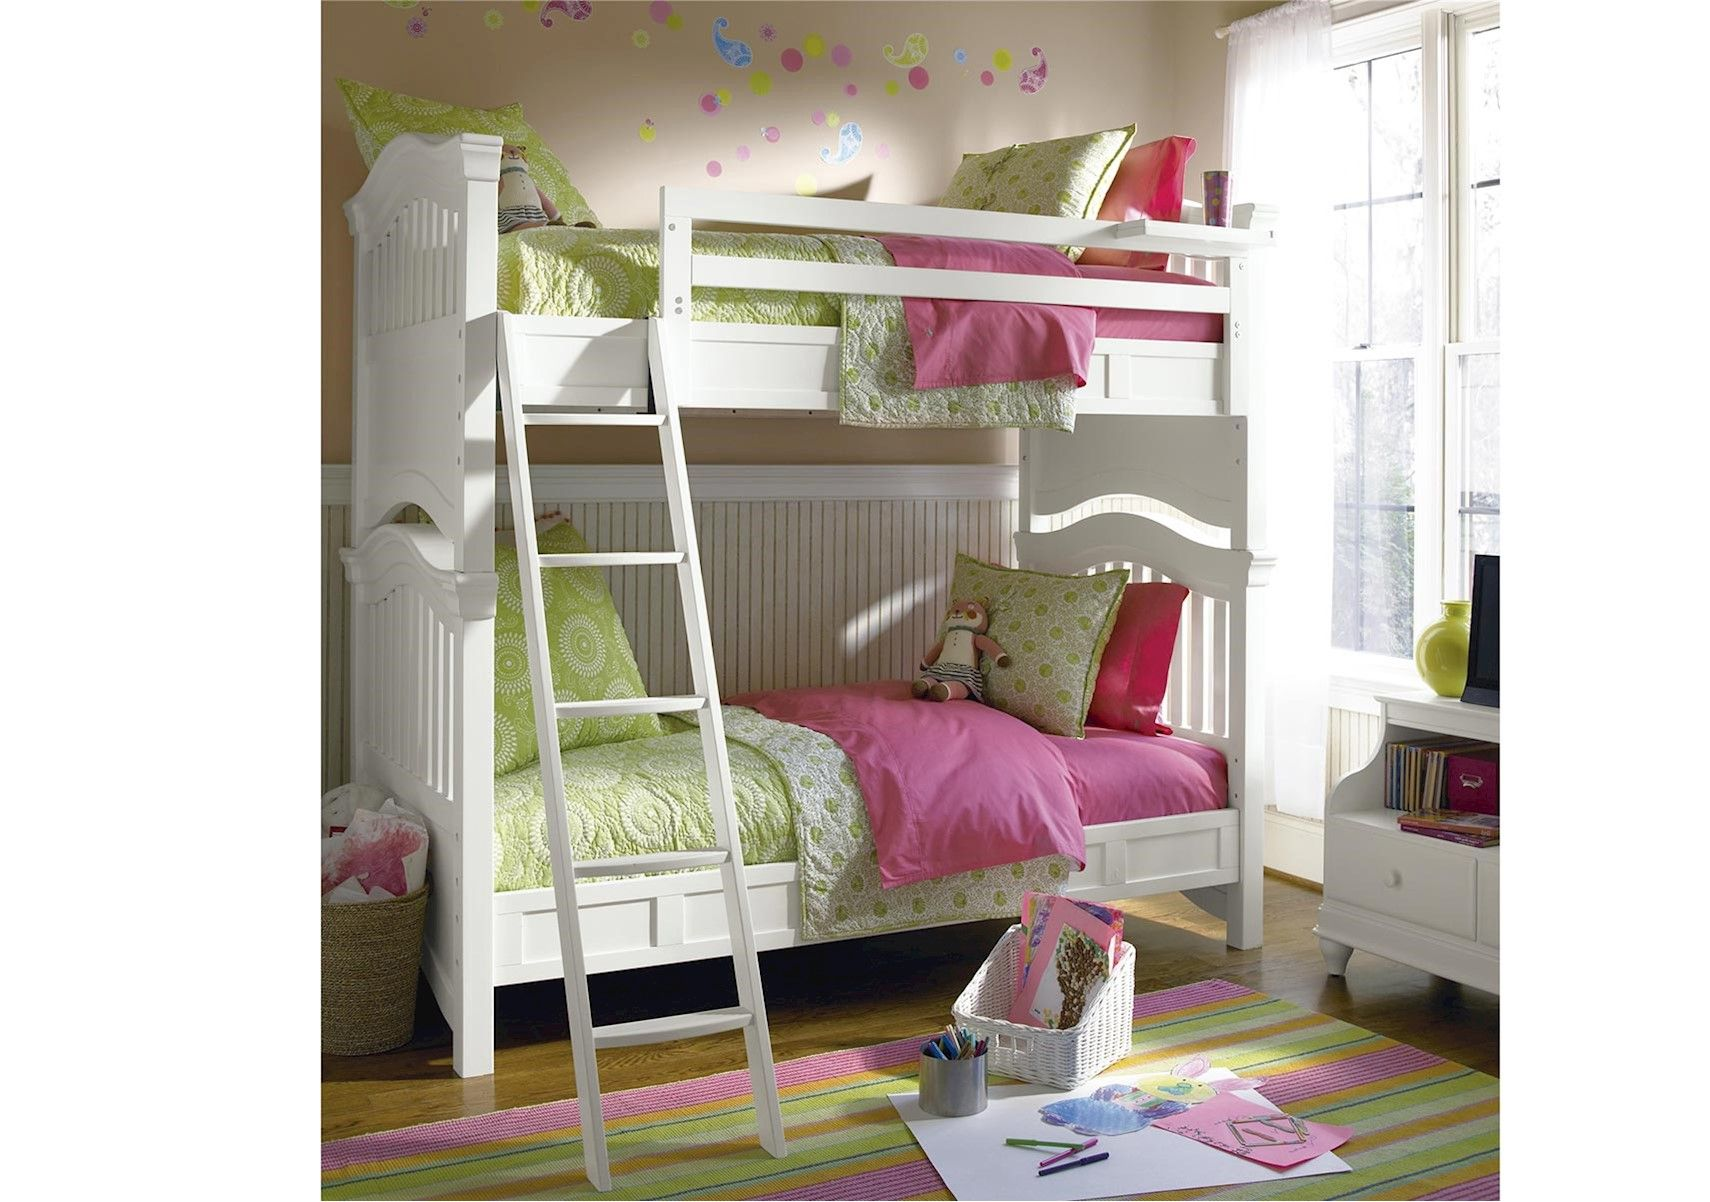 Lacks Classics 4.0White Bunk Bed White bunk beds